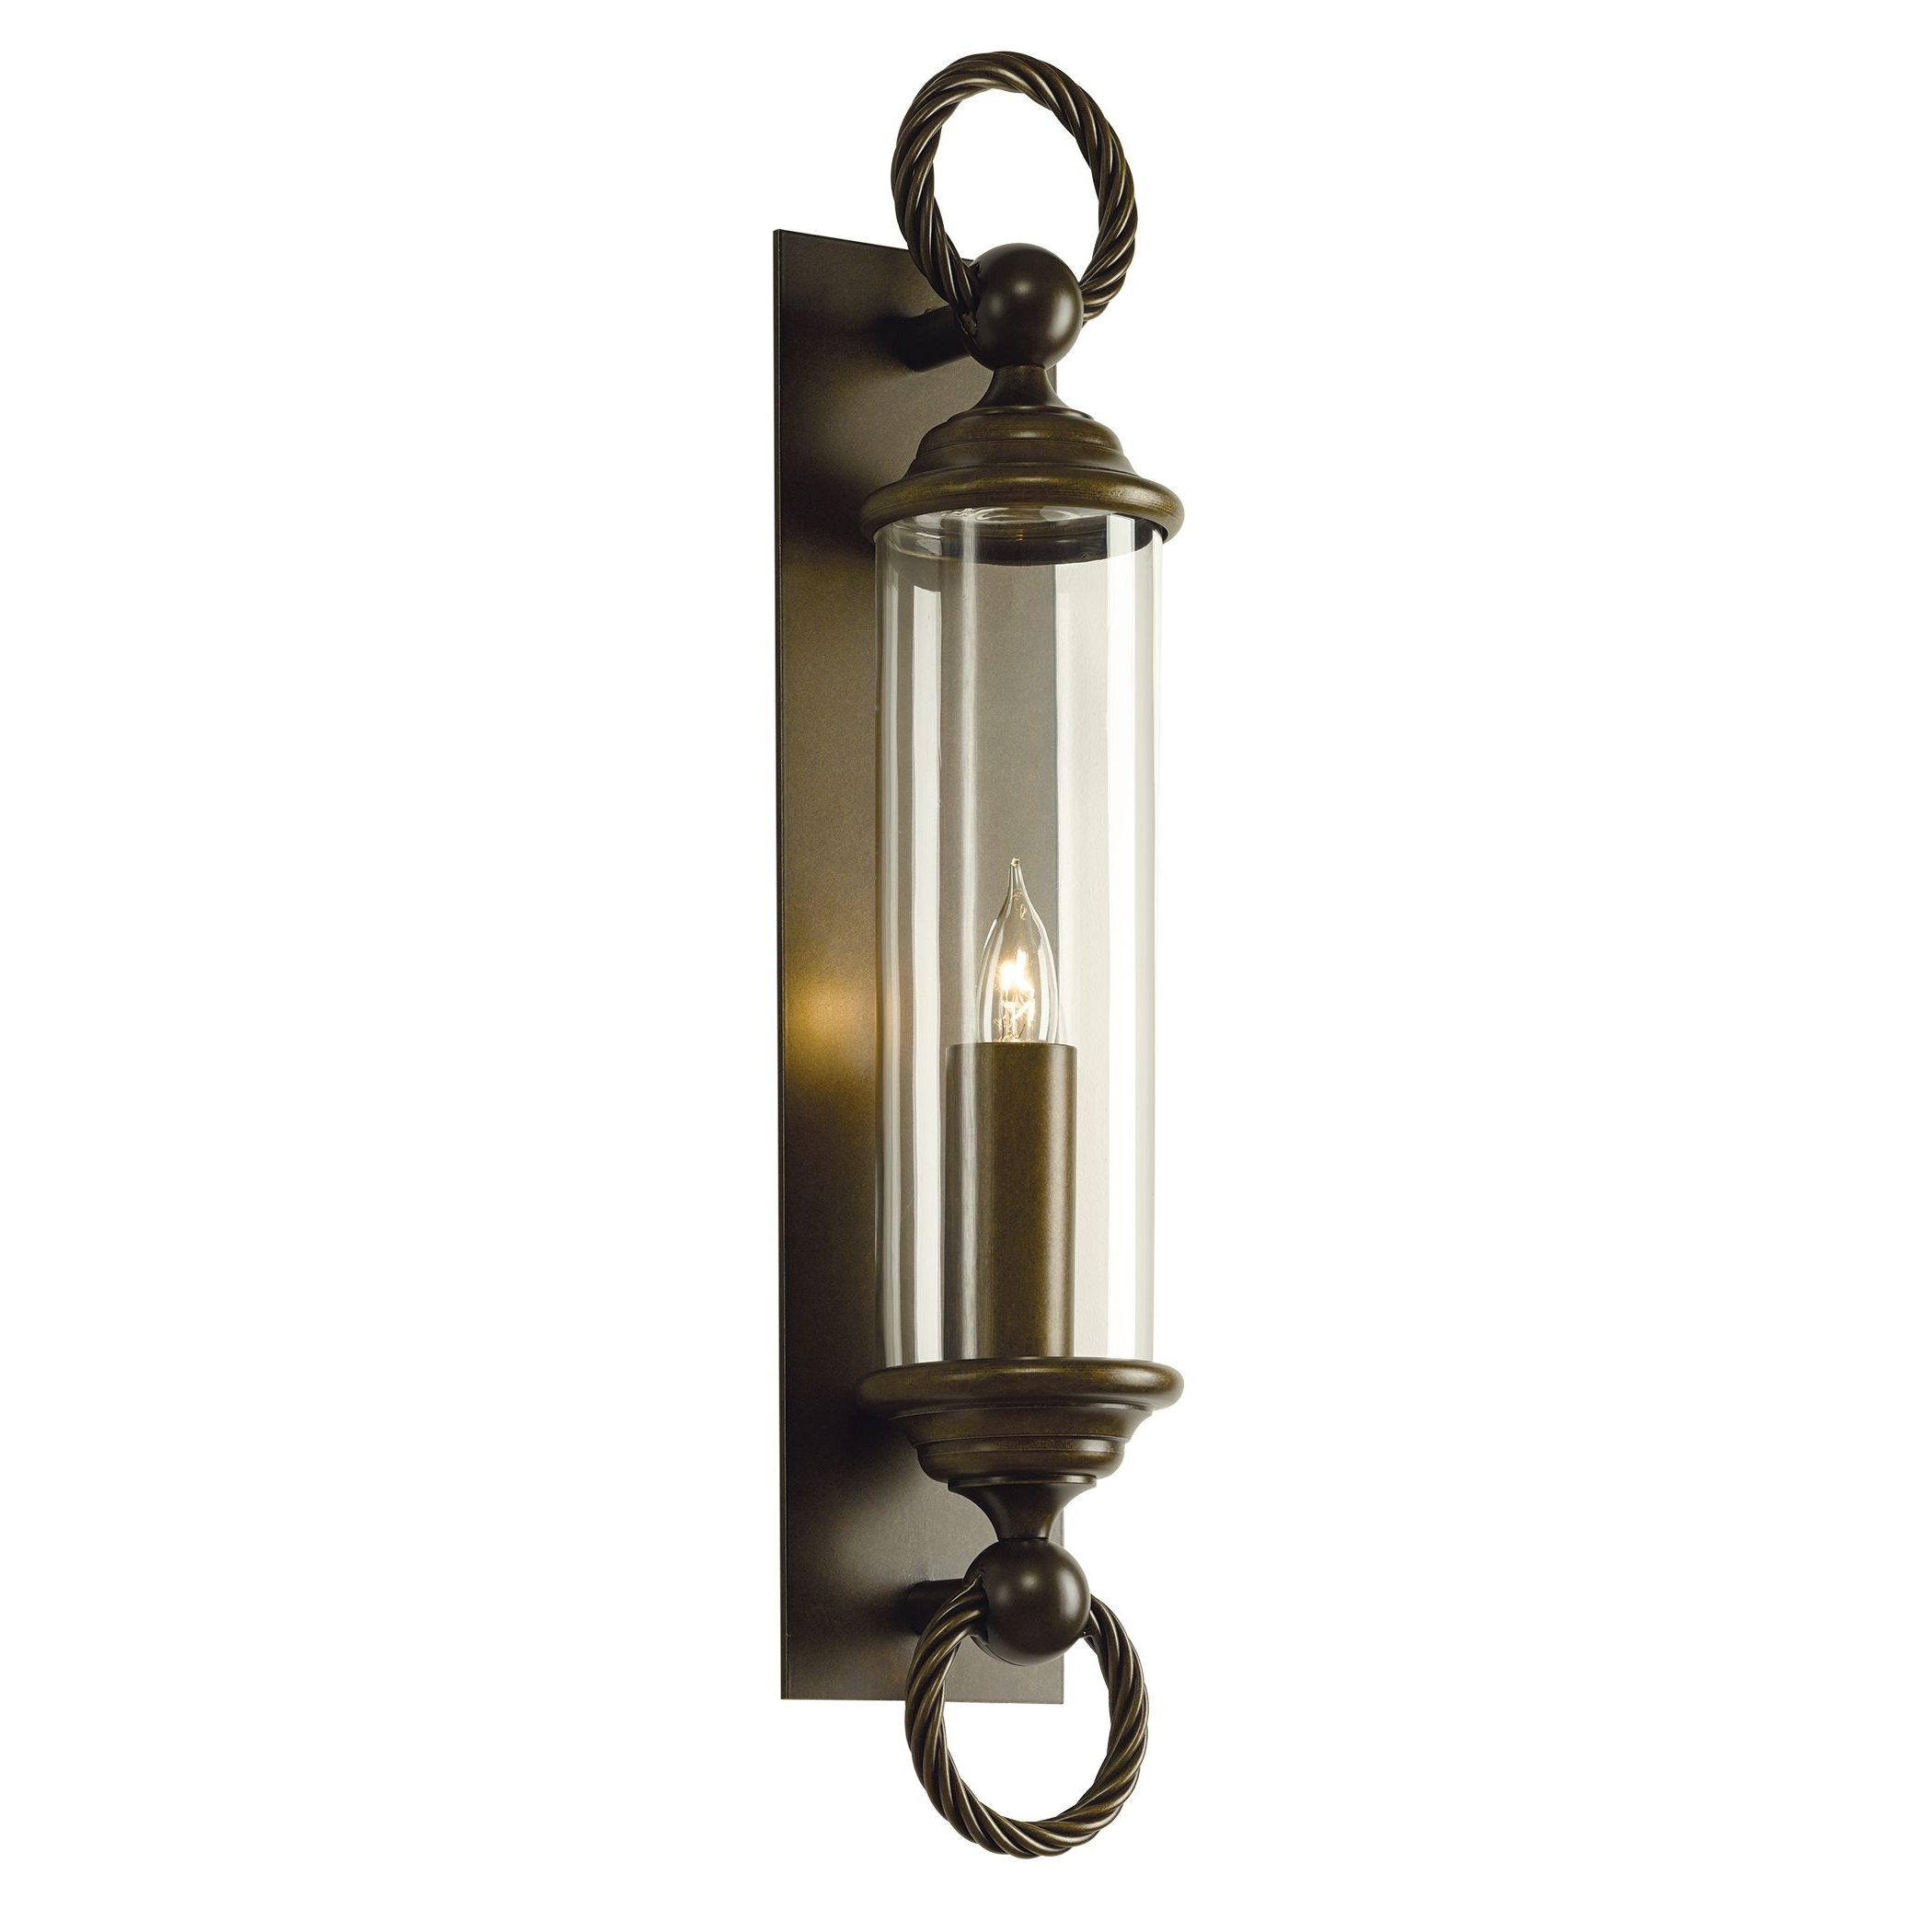 Trendy Large Outdoor Wall Light Fixtures With Regard To Cavo Large Outdoor Wall Sconce – Hubbardton Forge (View 18 of 20)